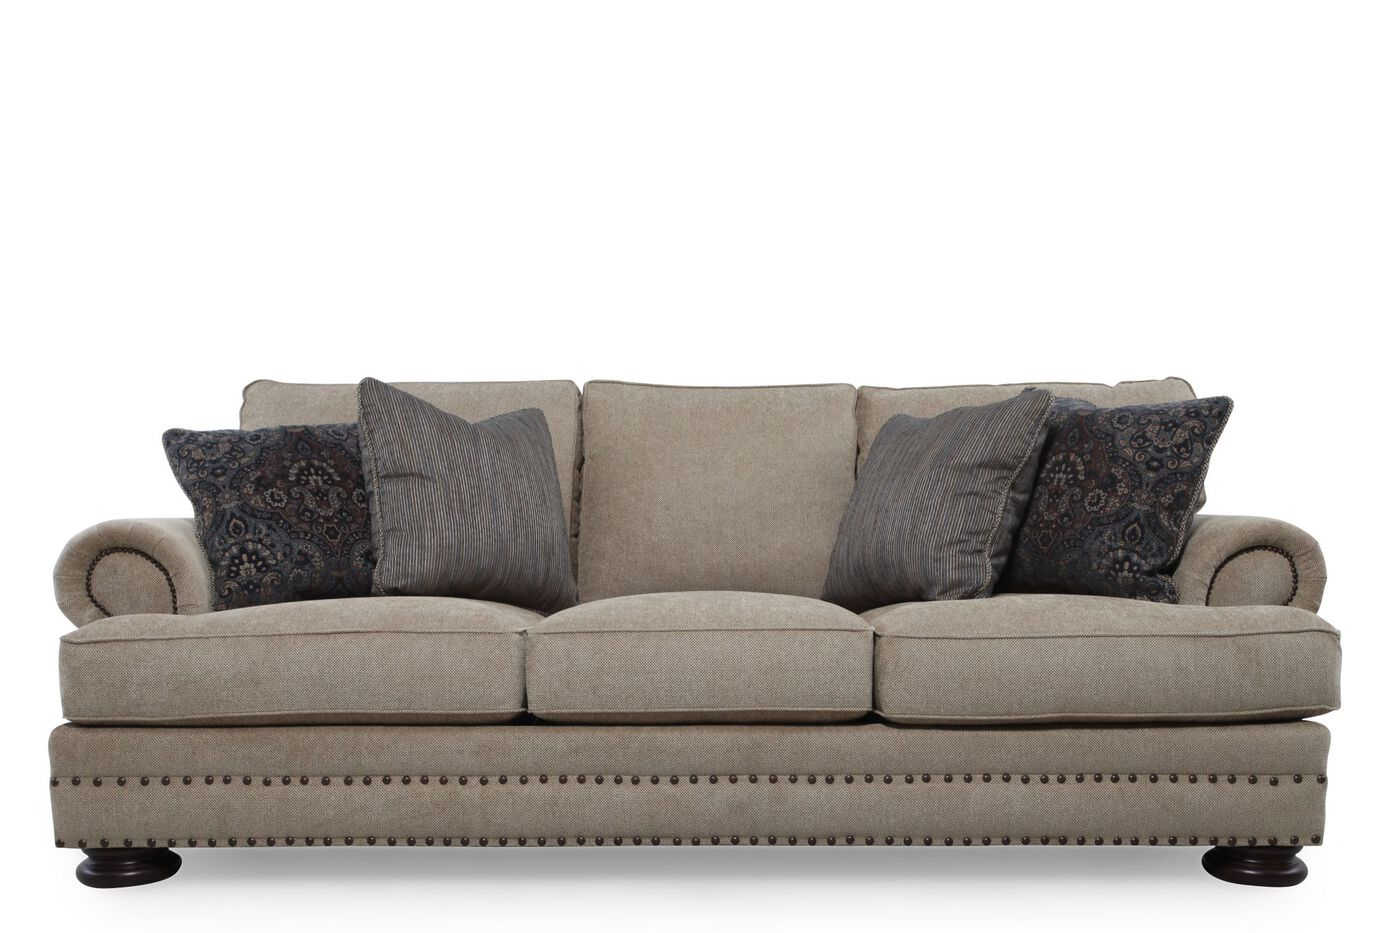 Bernhardt foster brown sofa mathis brothers furniture for Bernhardt furniture